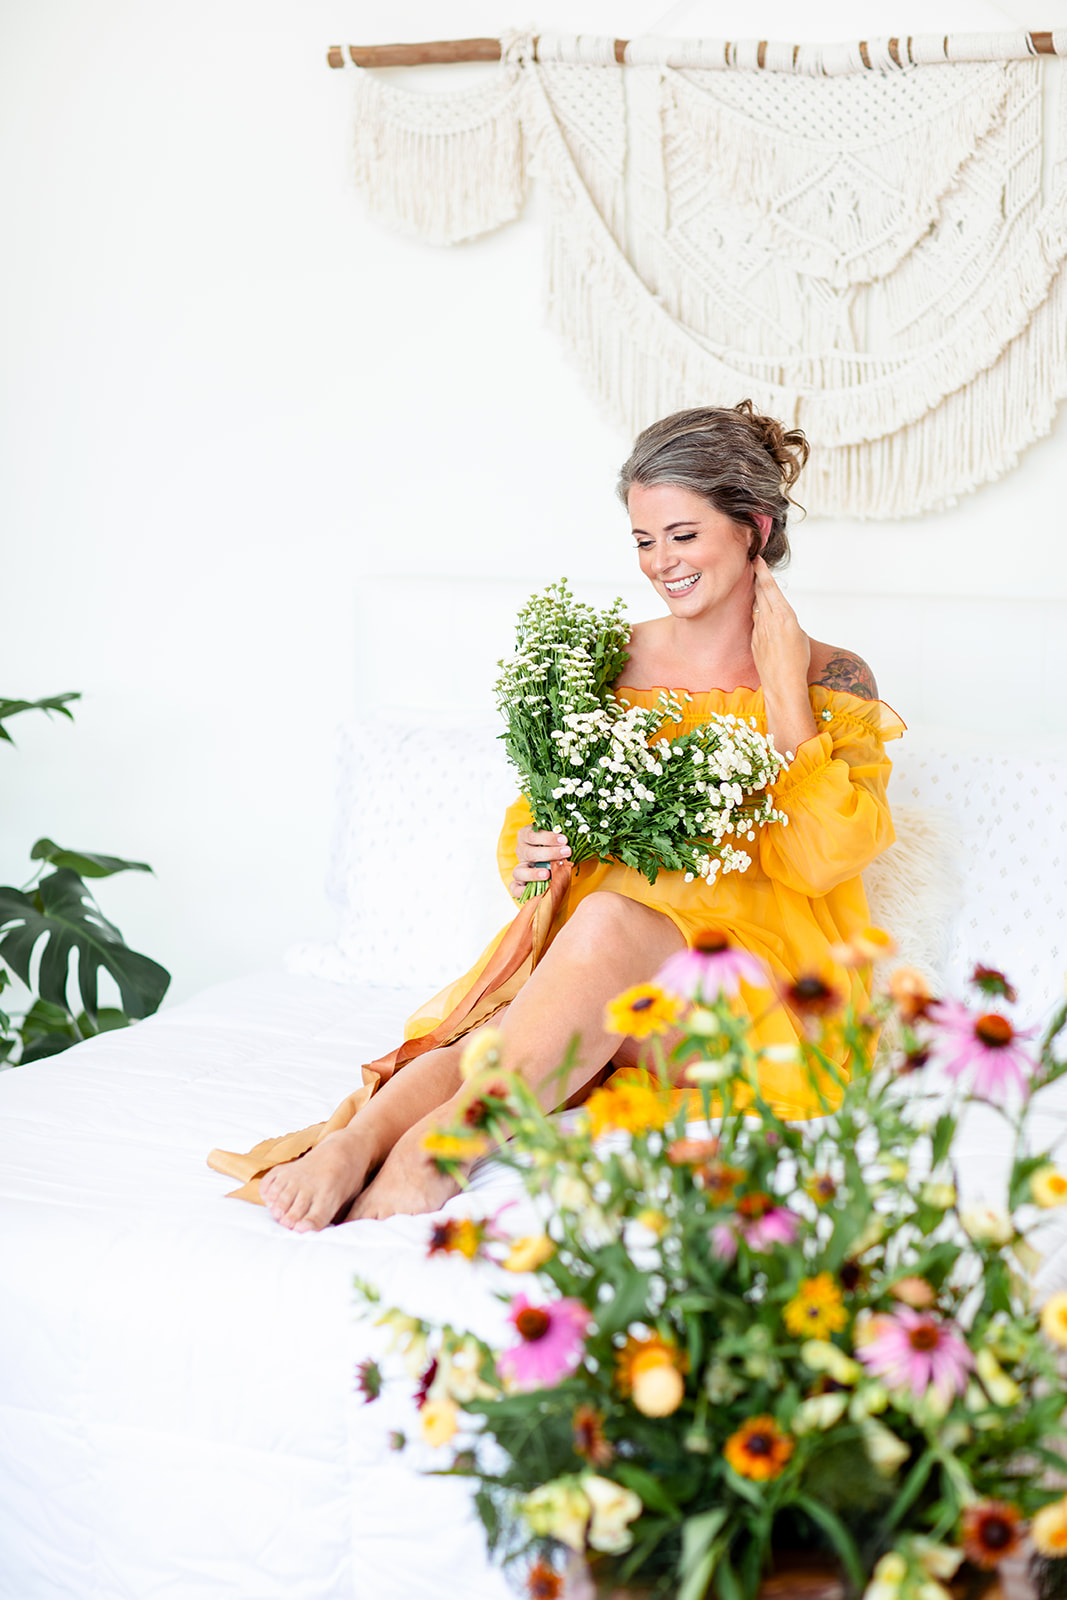 Floral Inspired Colorful Boudoir Session - Image Property of www.j-dphoto.com